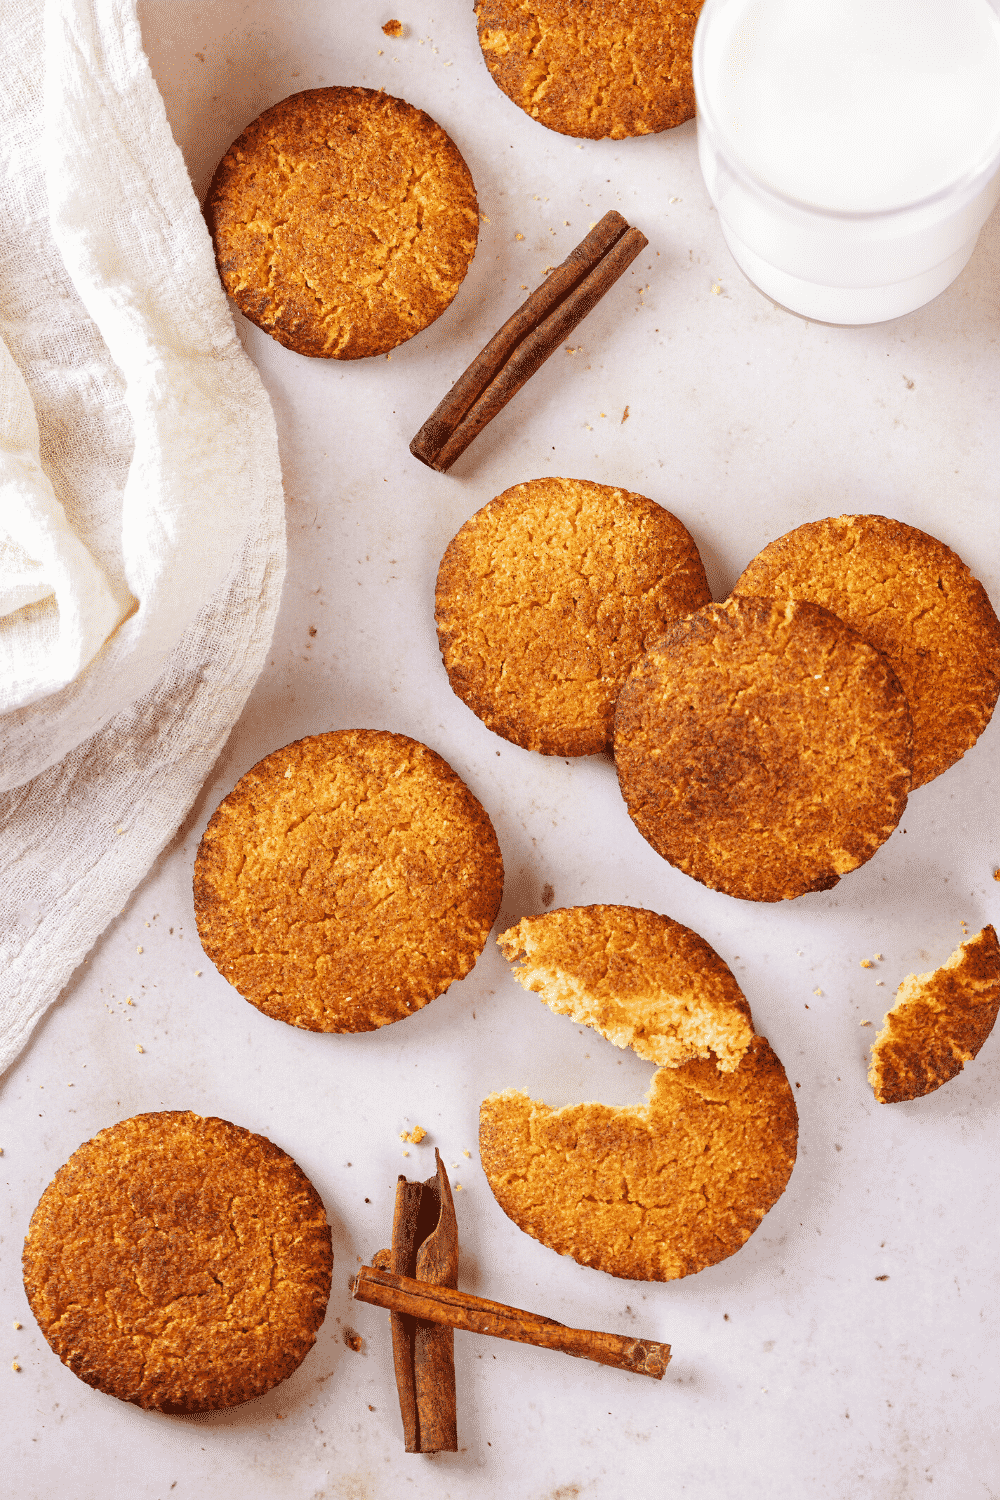 A couple of snickerdoodle cookies on a white counter.